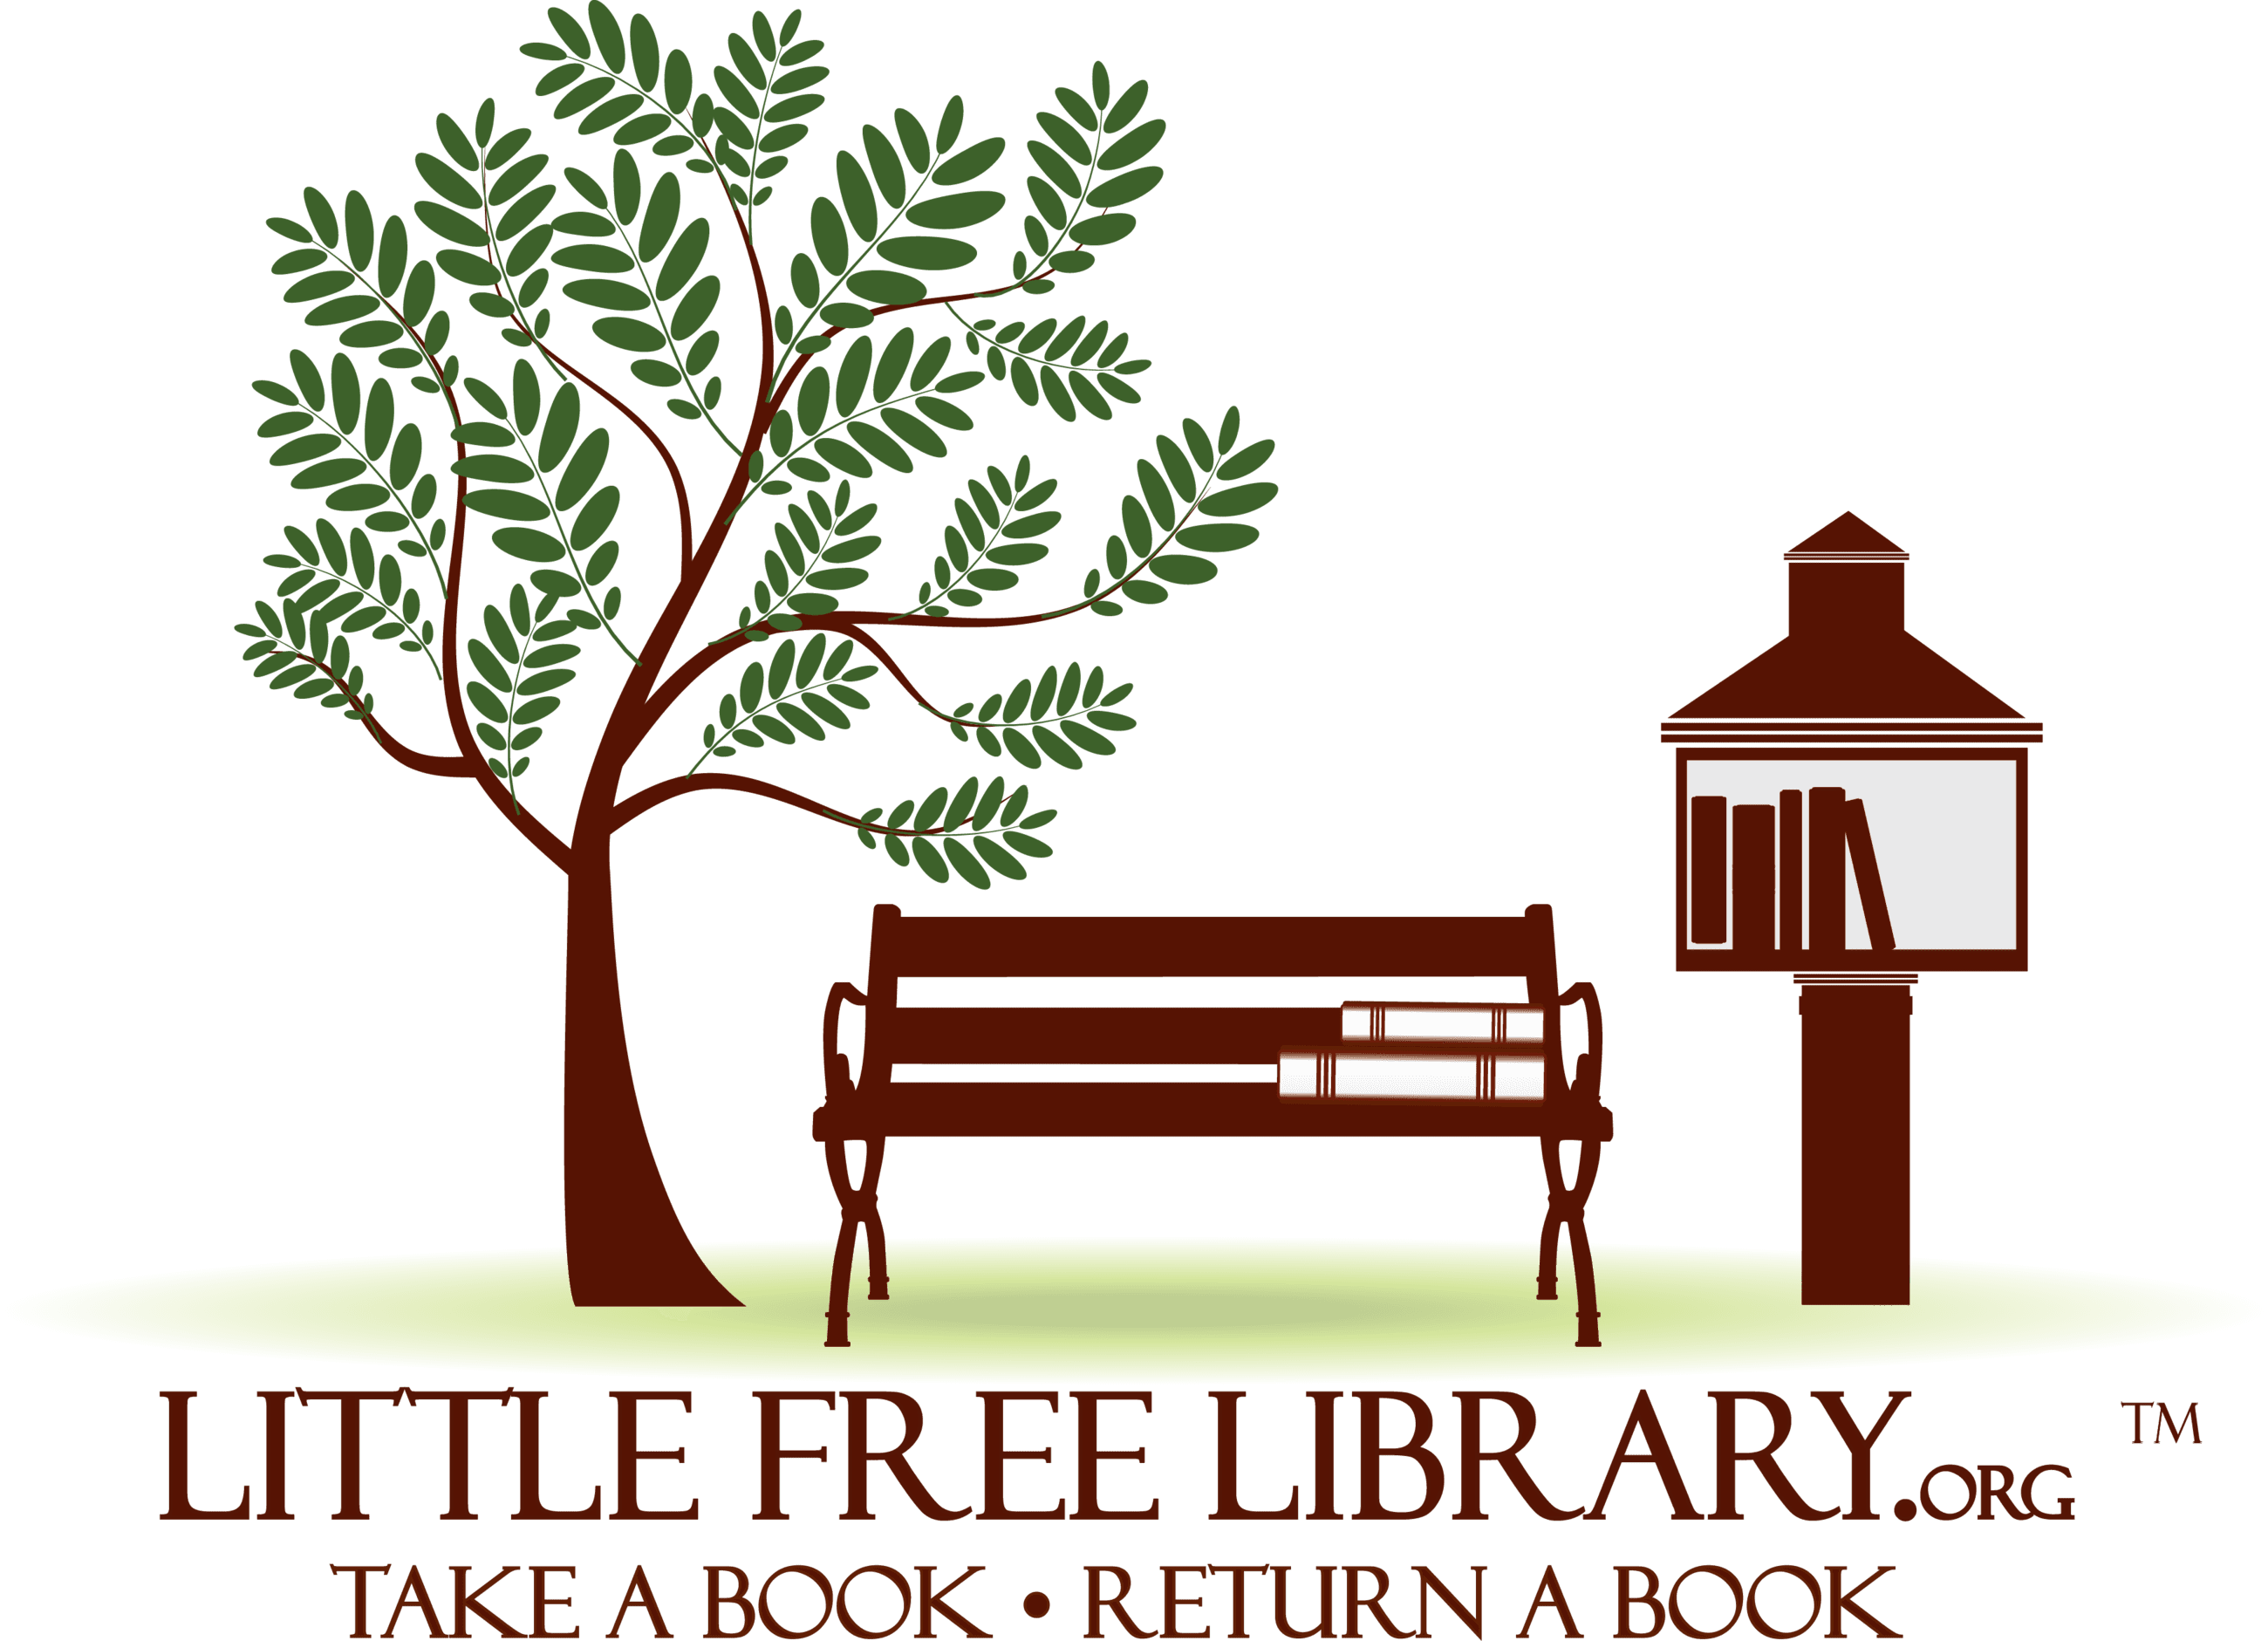 Document clipart visitor book. Little free libraries safety